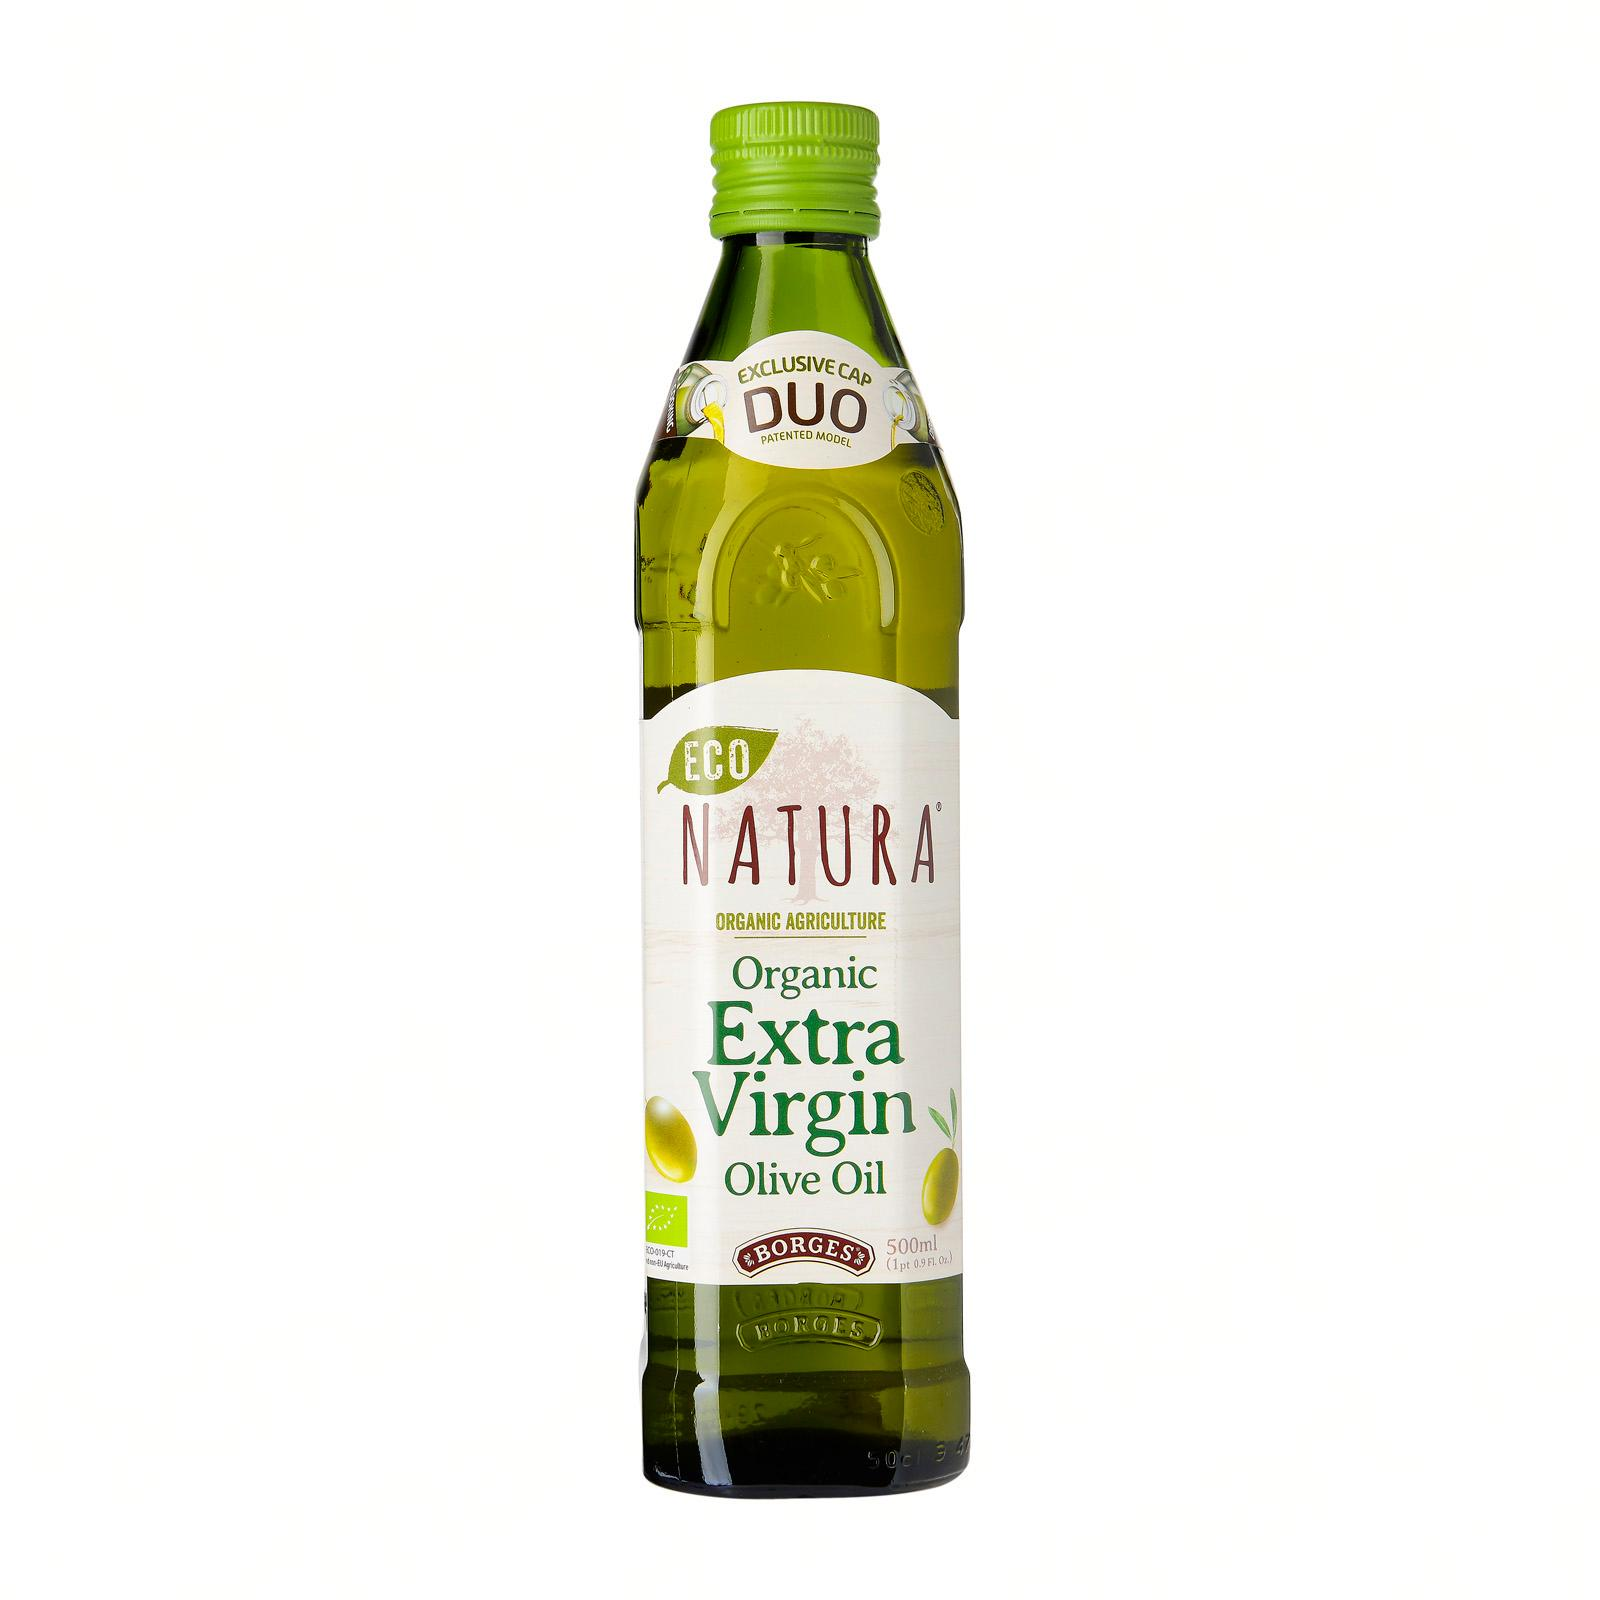 Borges Organic Extra Virgin Olive Oil